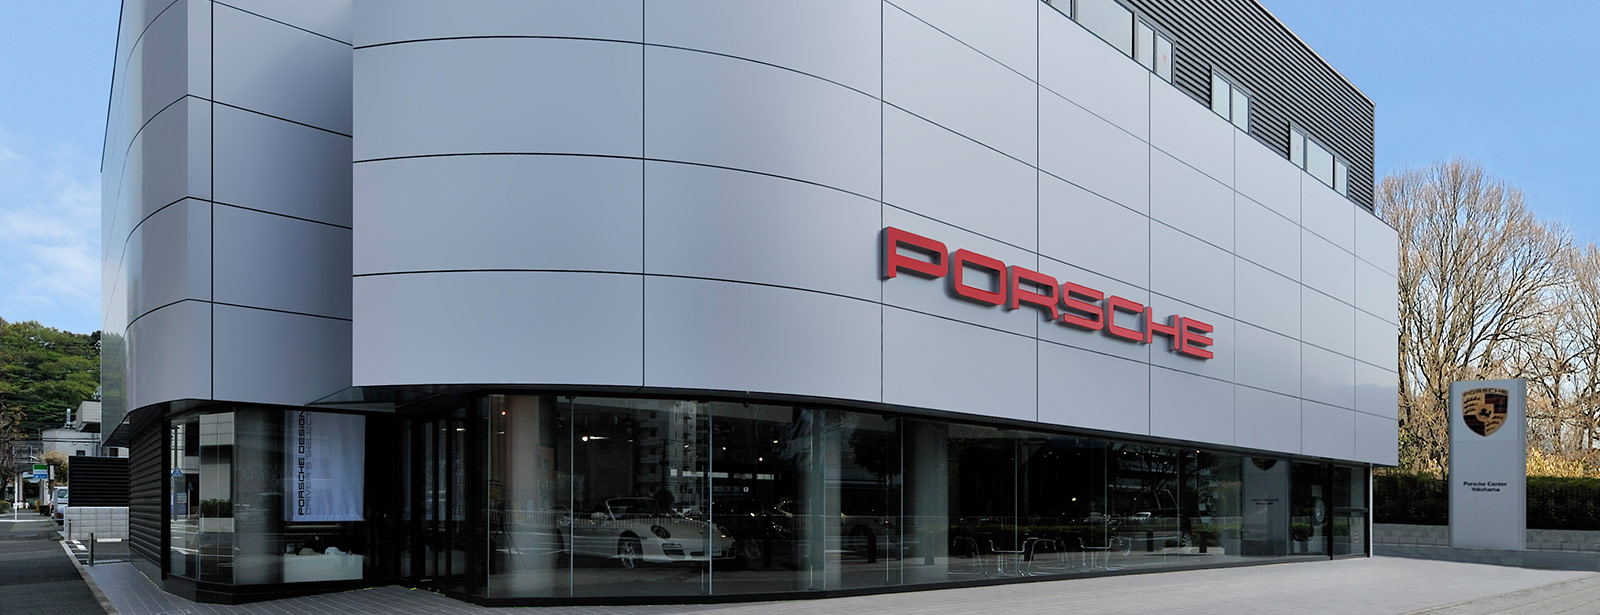 Porsche Center Yokohama.